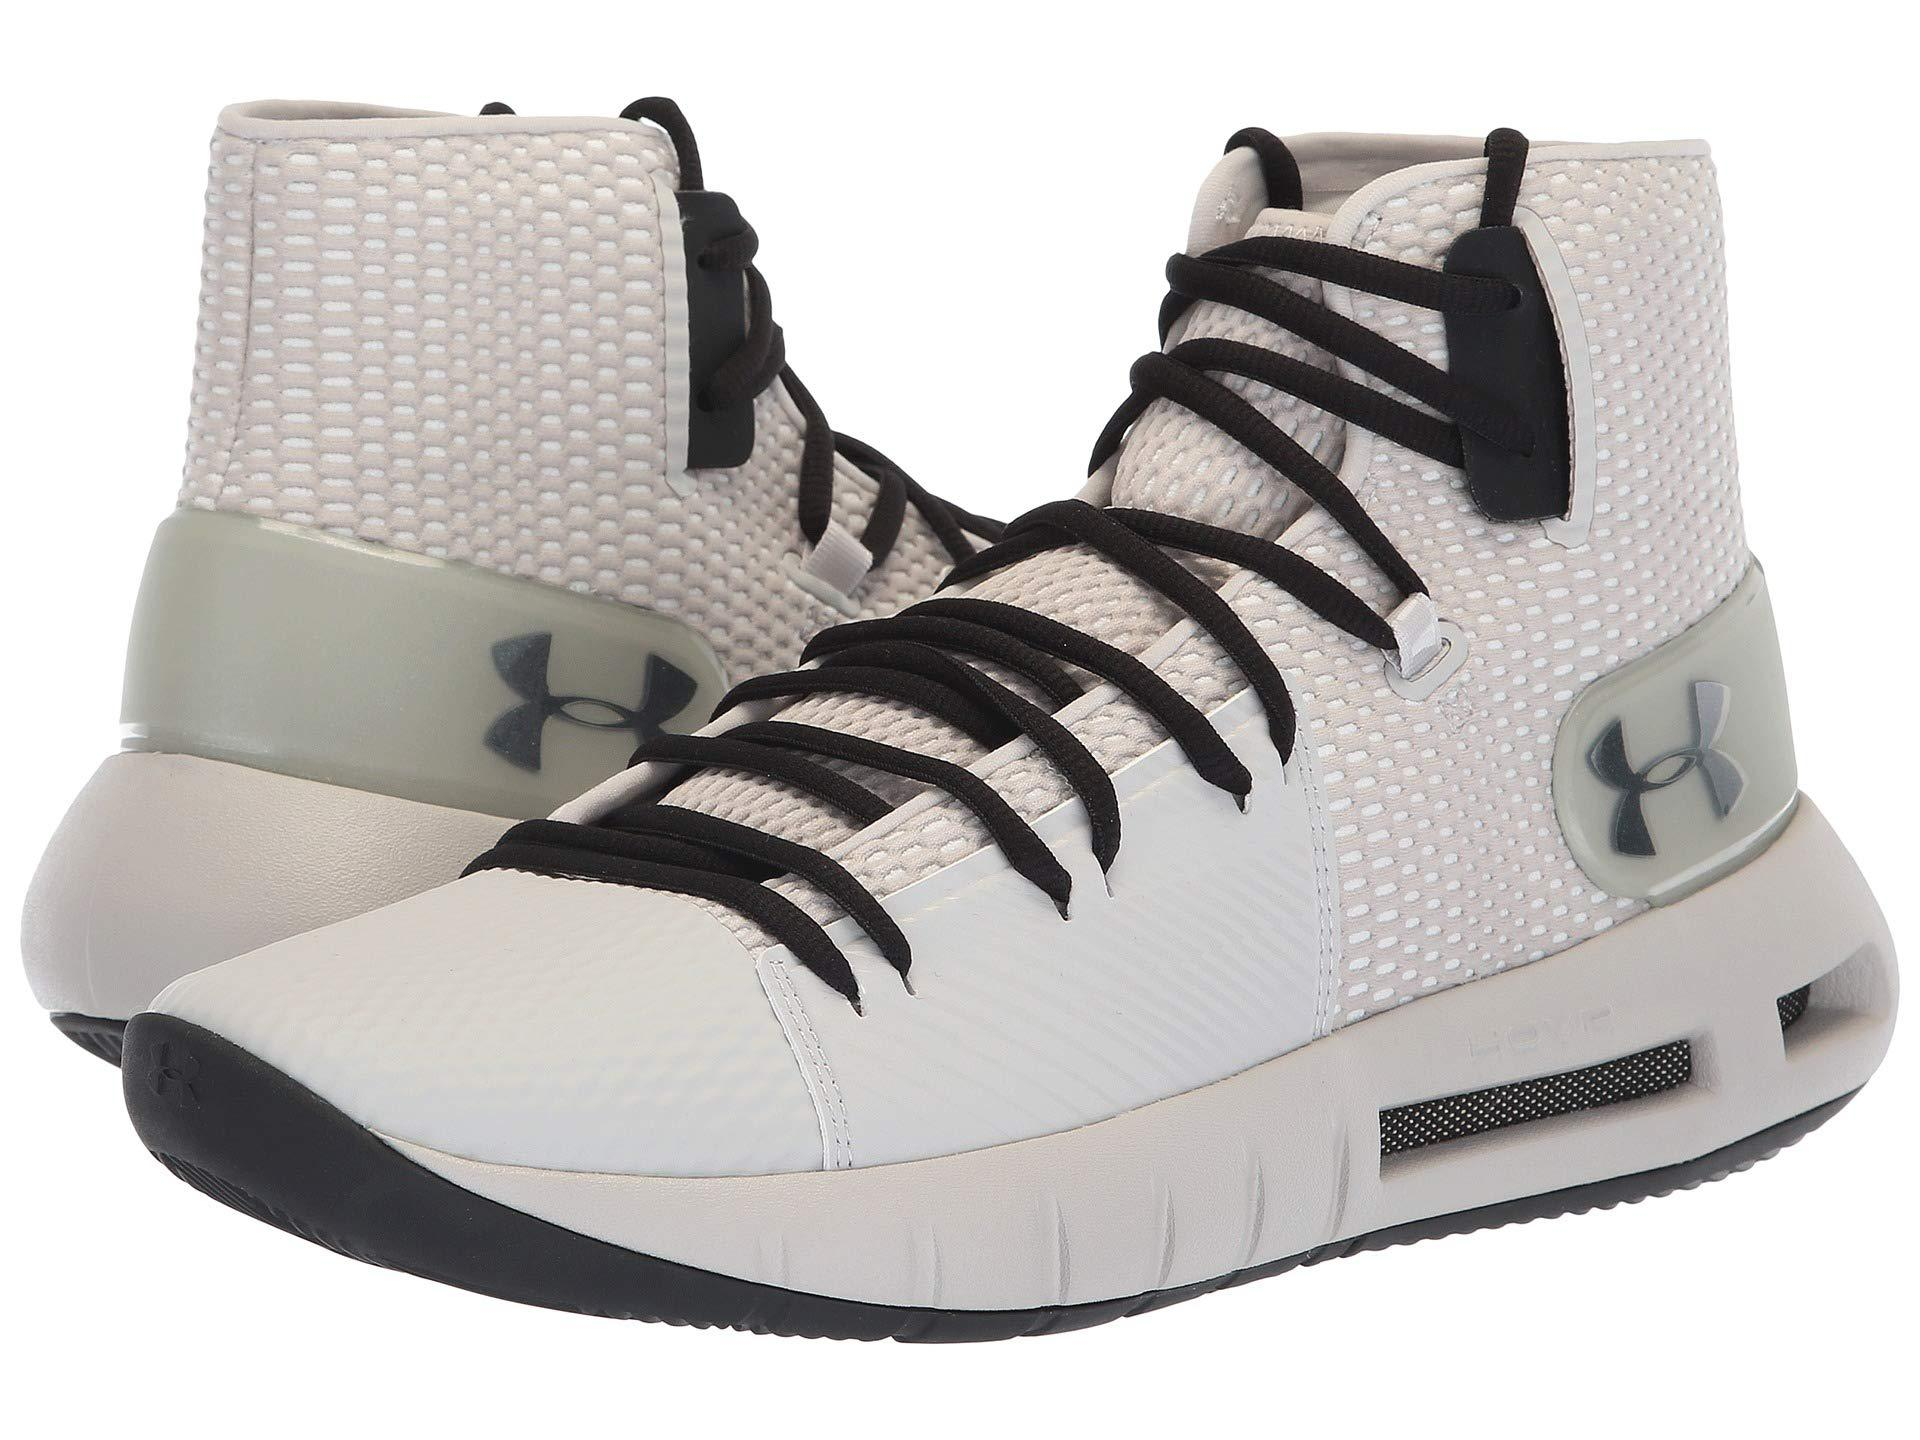 98ea68e533e4 Lyst - Under Armour Ua Hovr Havoc in Gray for Men